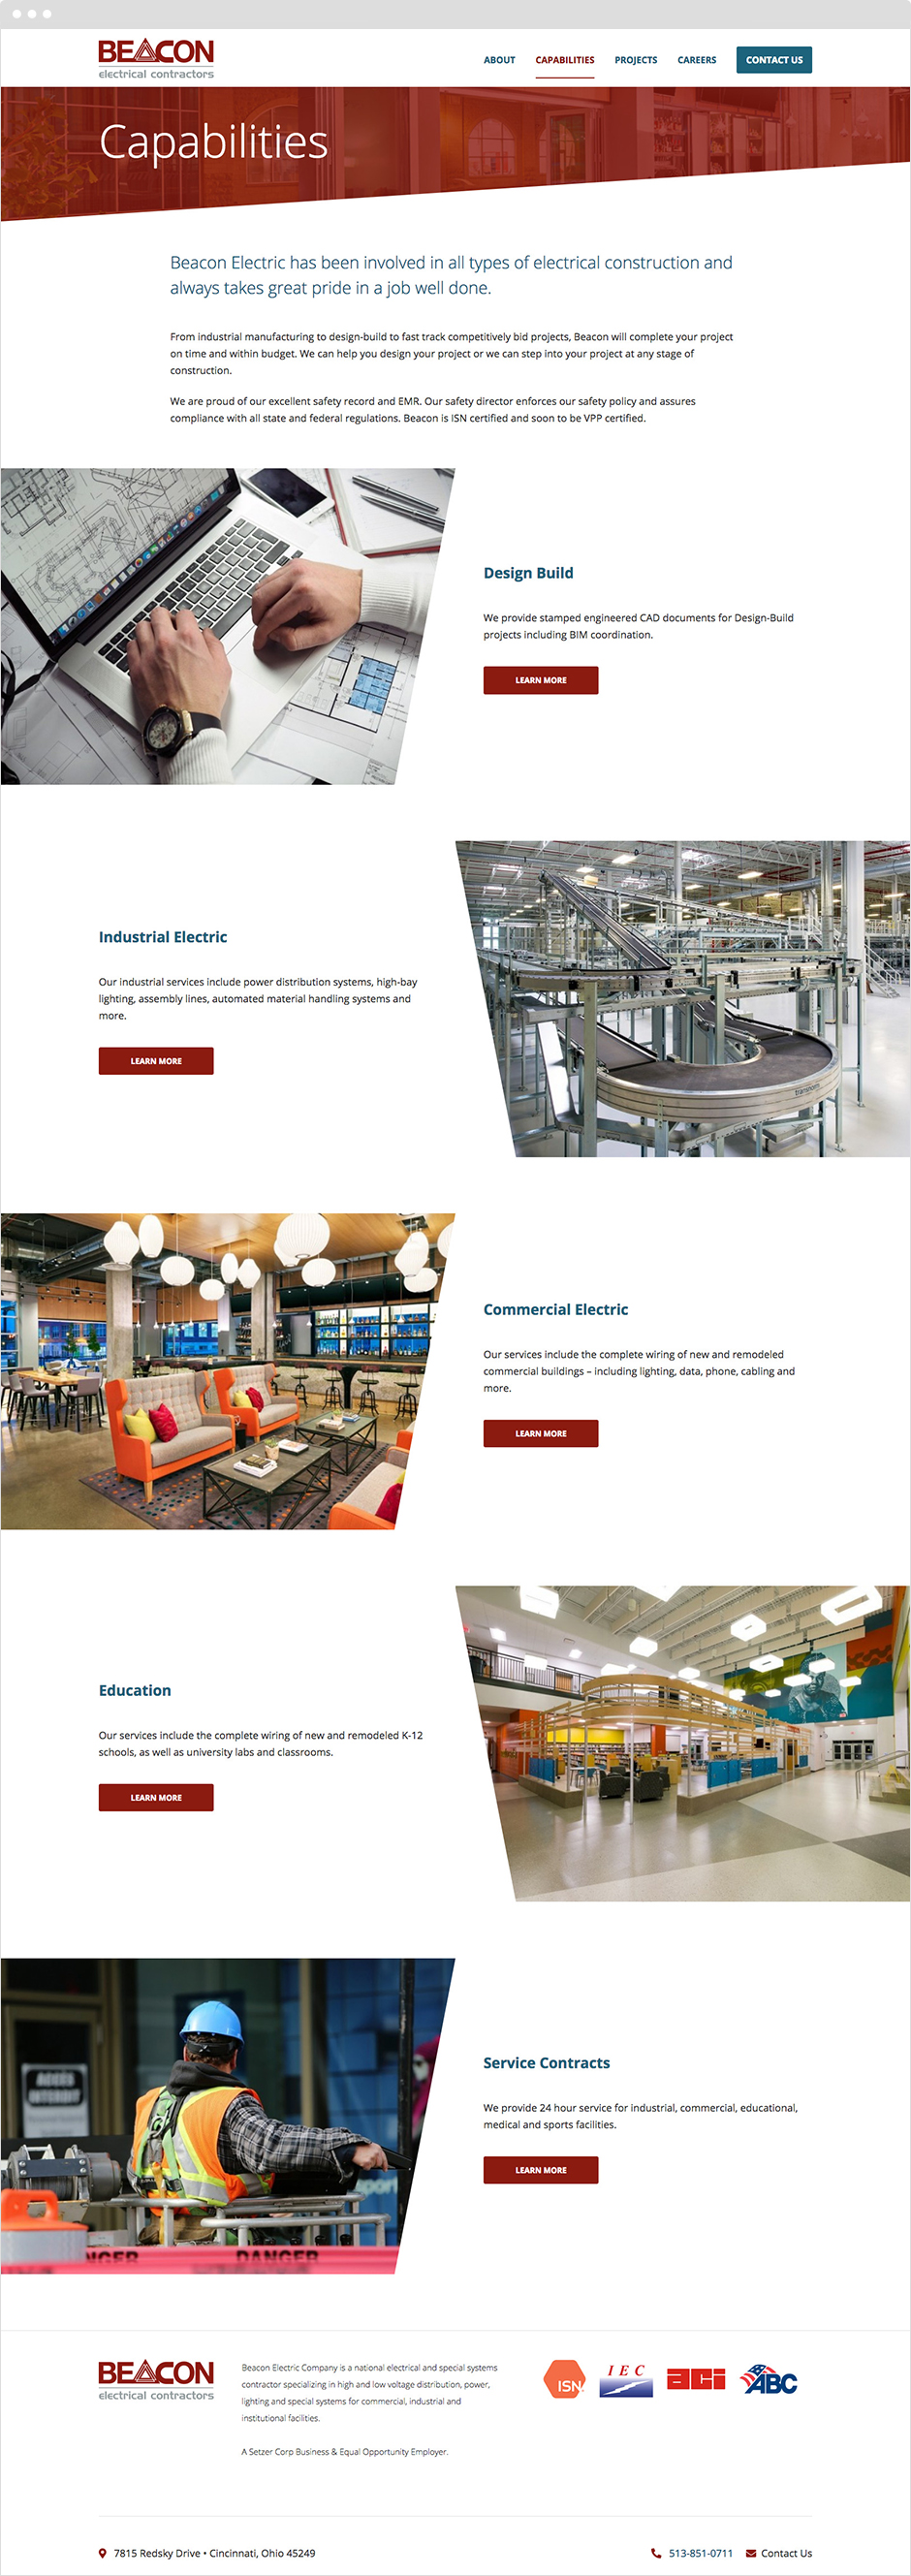 Beacon Electric Responsive ExpressionEngine Website Design